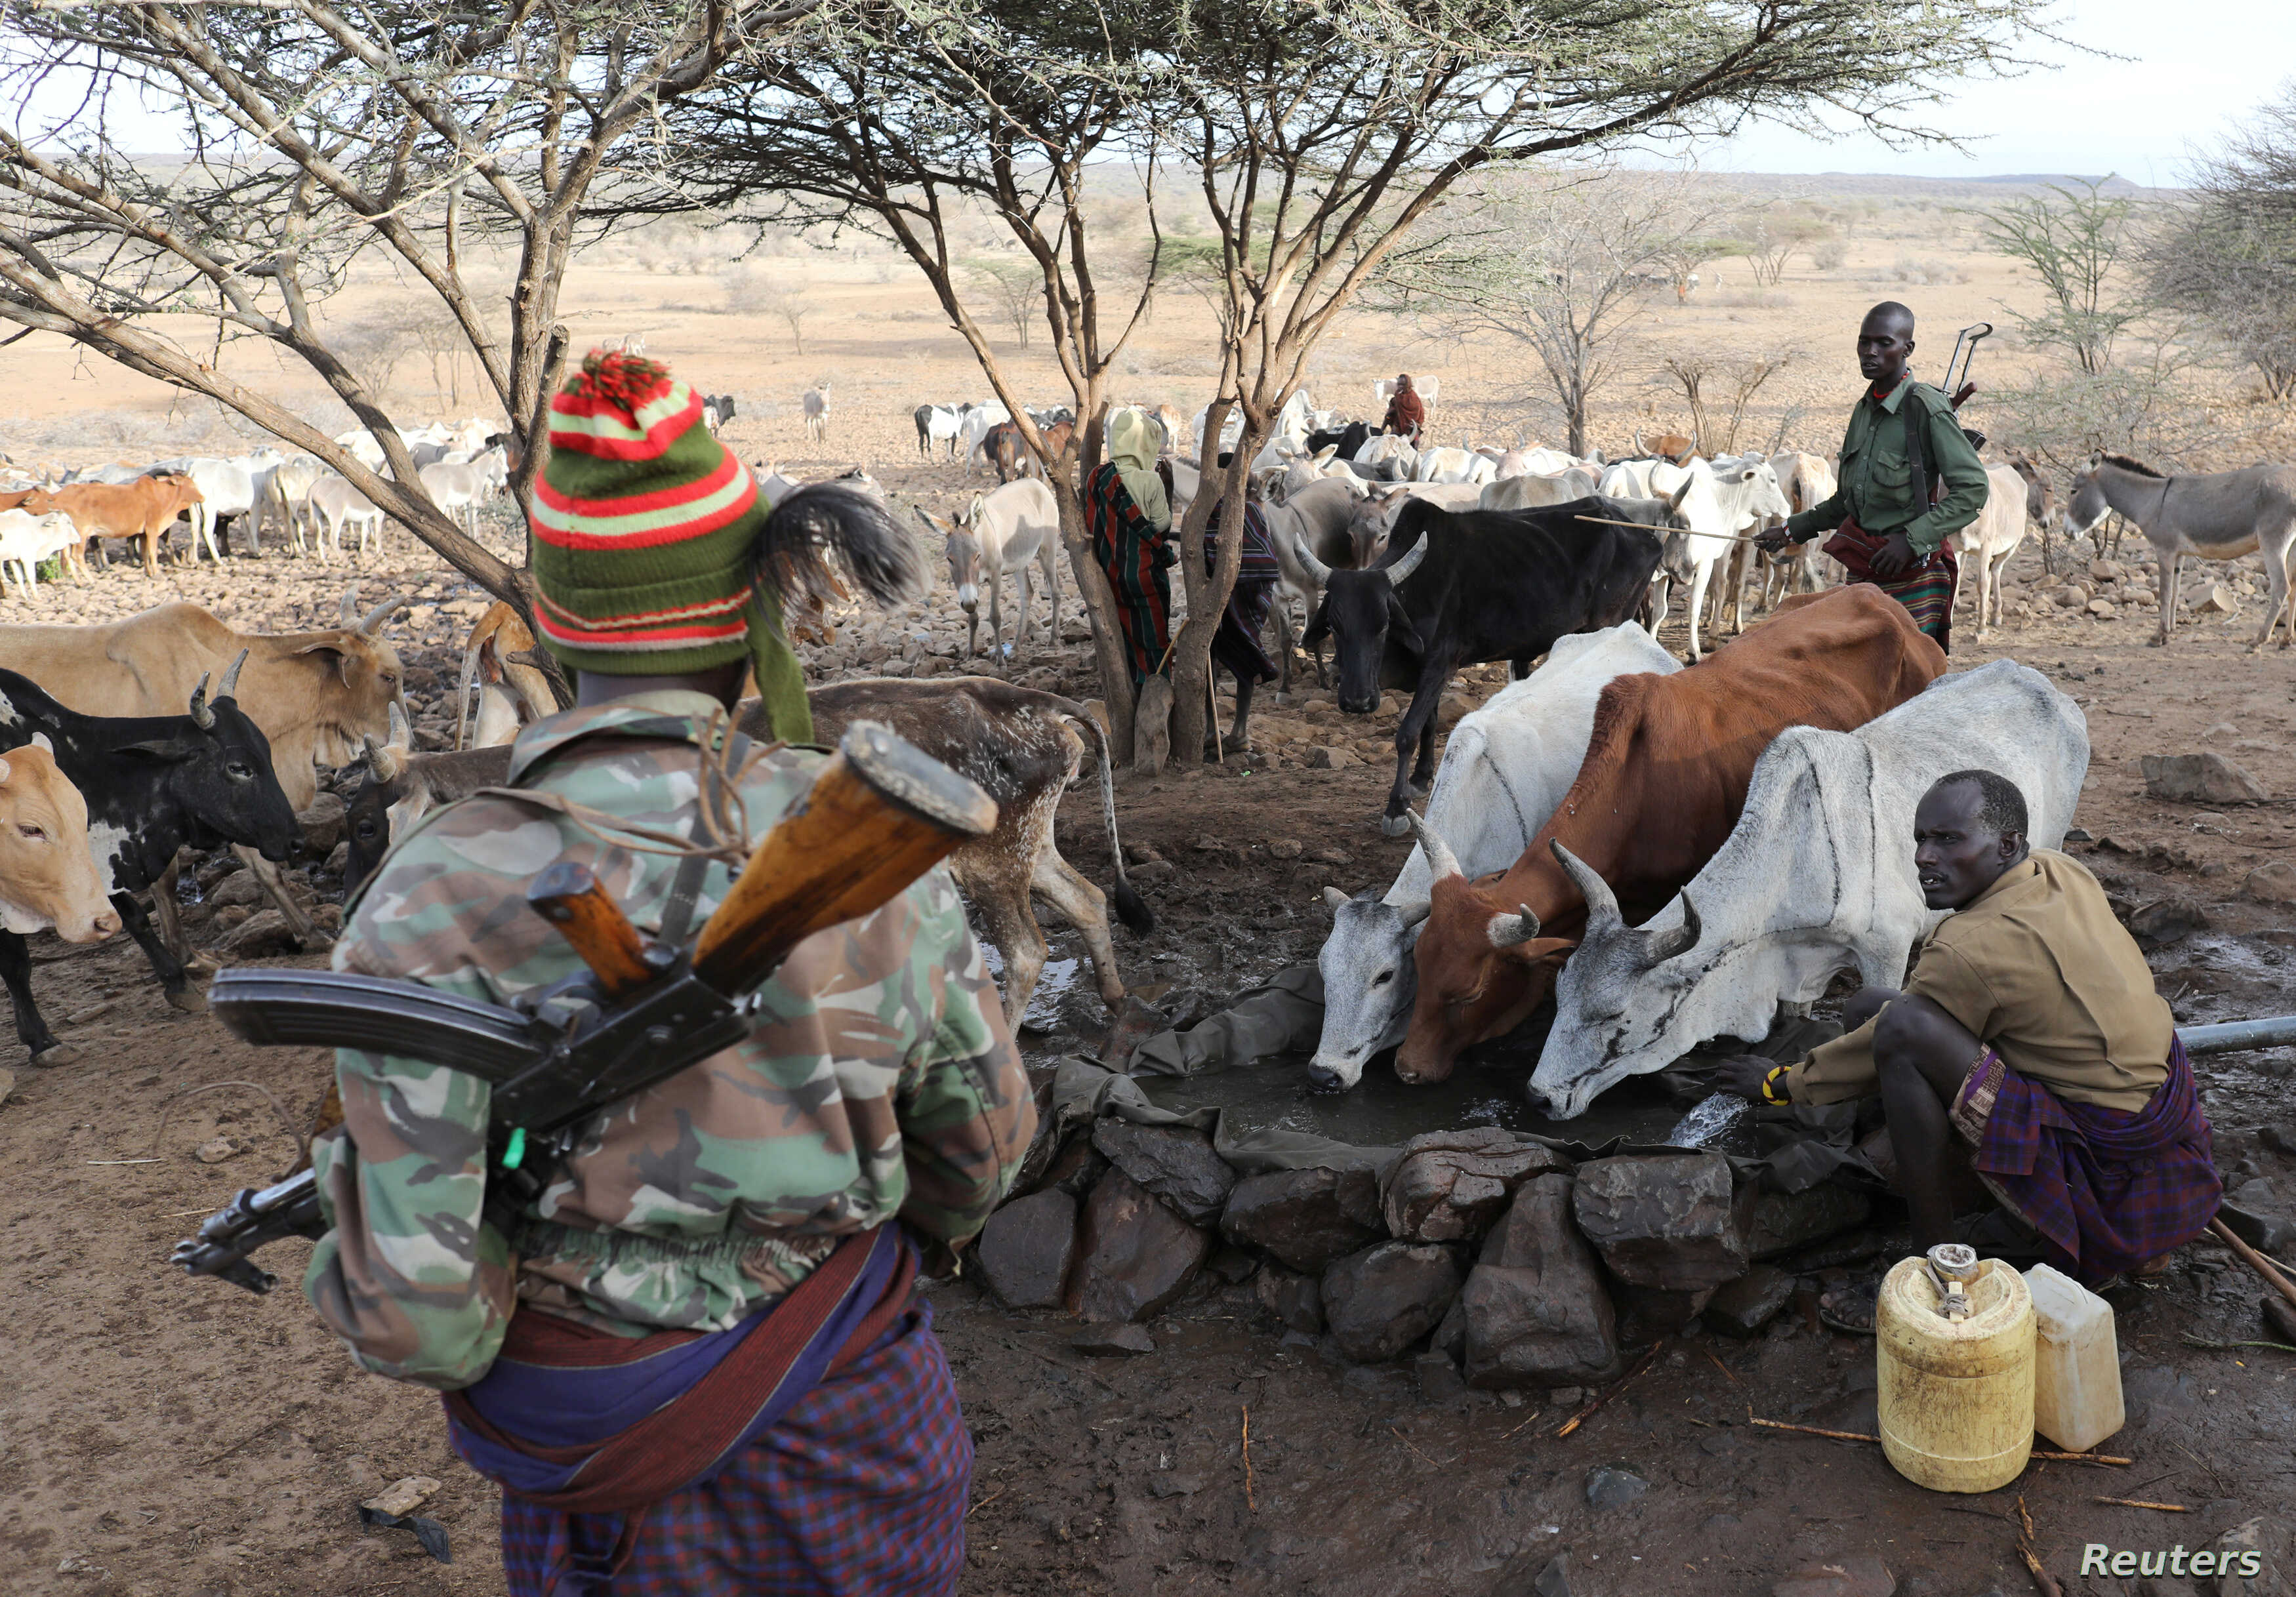 Turkana armed tribesmen stand around a borehole in order to protect their cattle from rival Pokot and Samburu tribesmen near Baragoy, Kenya, Feb. 14, 2017.